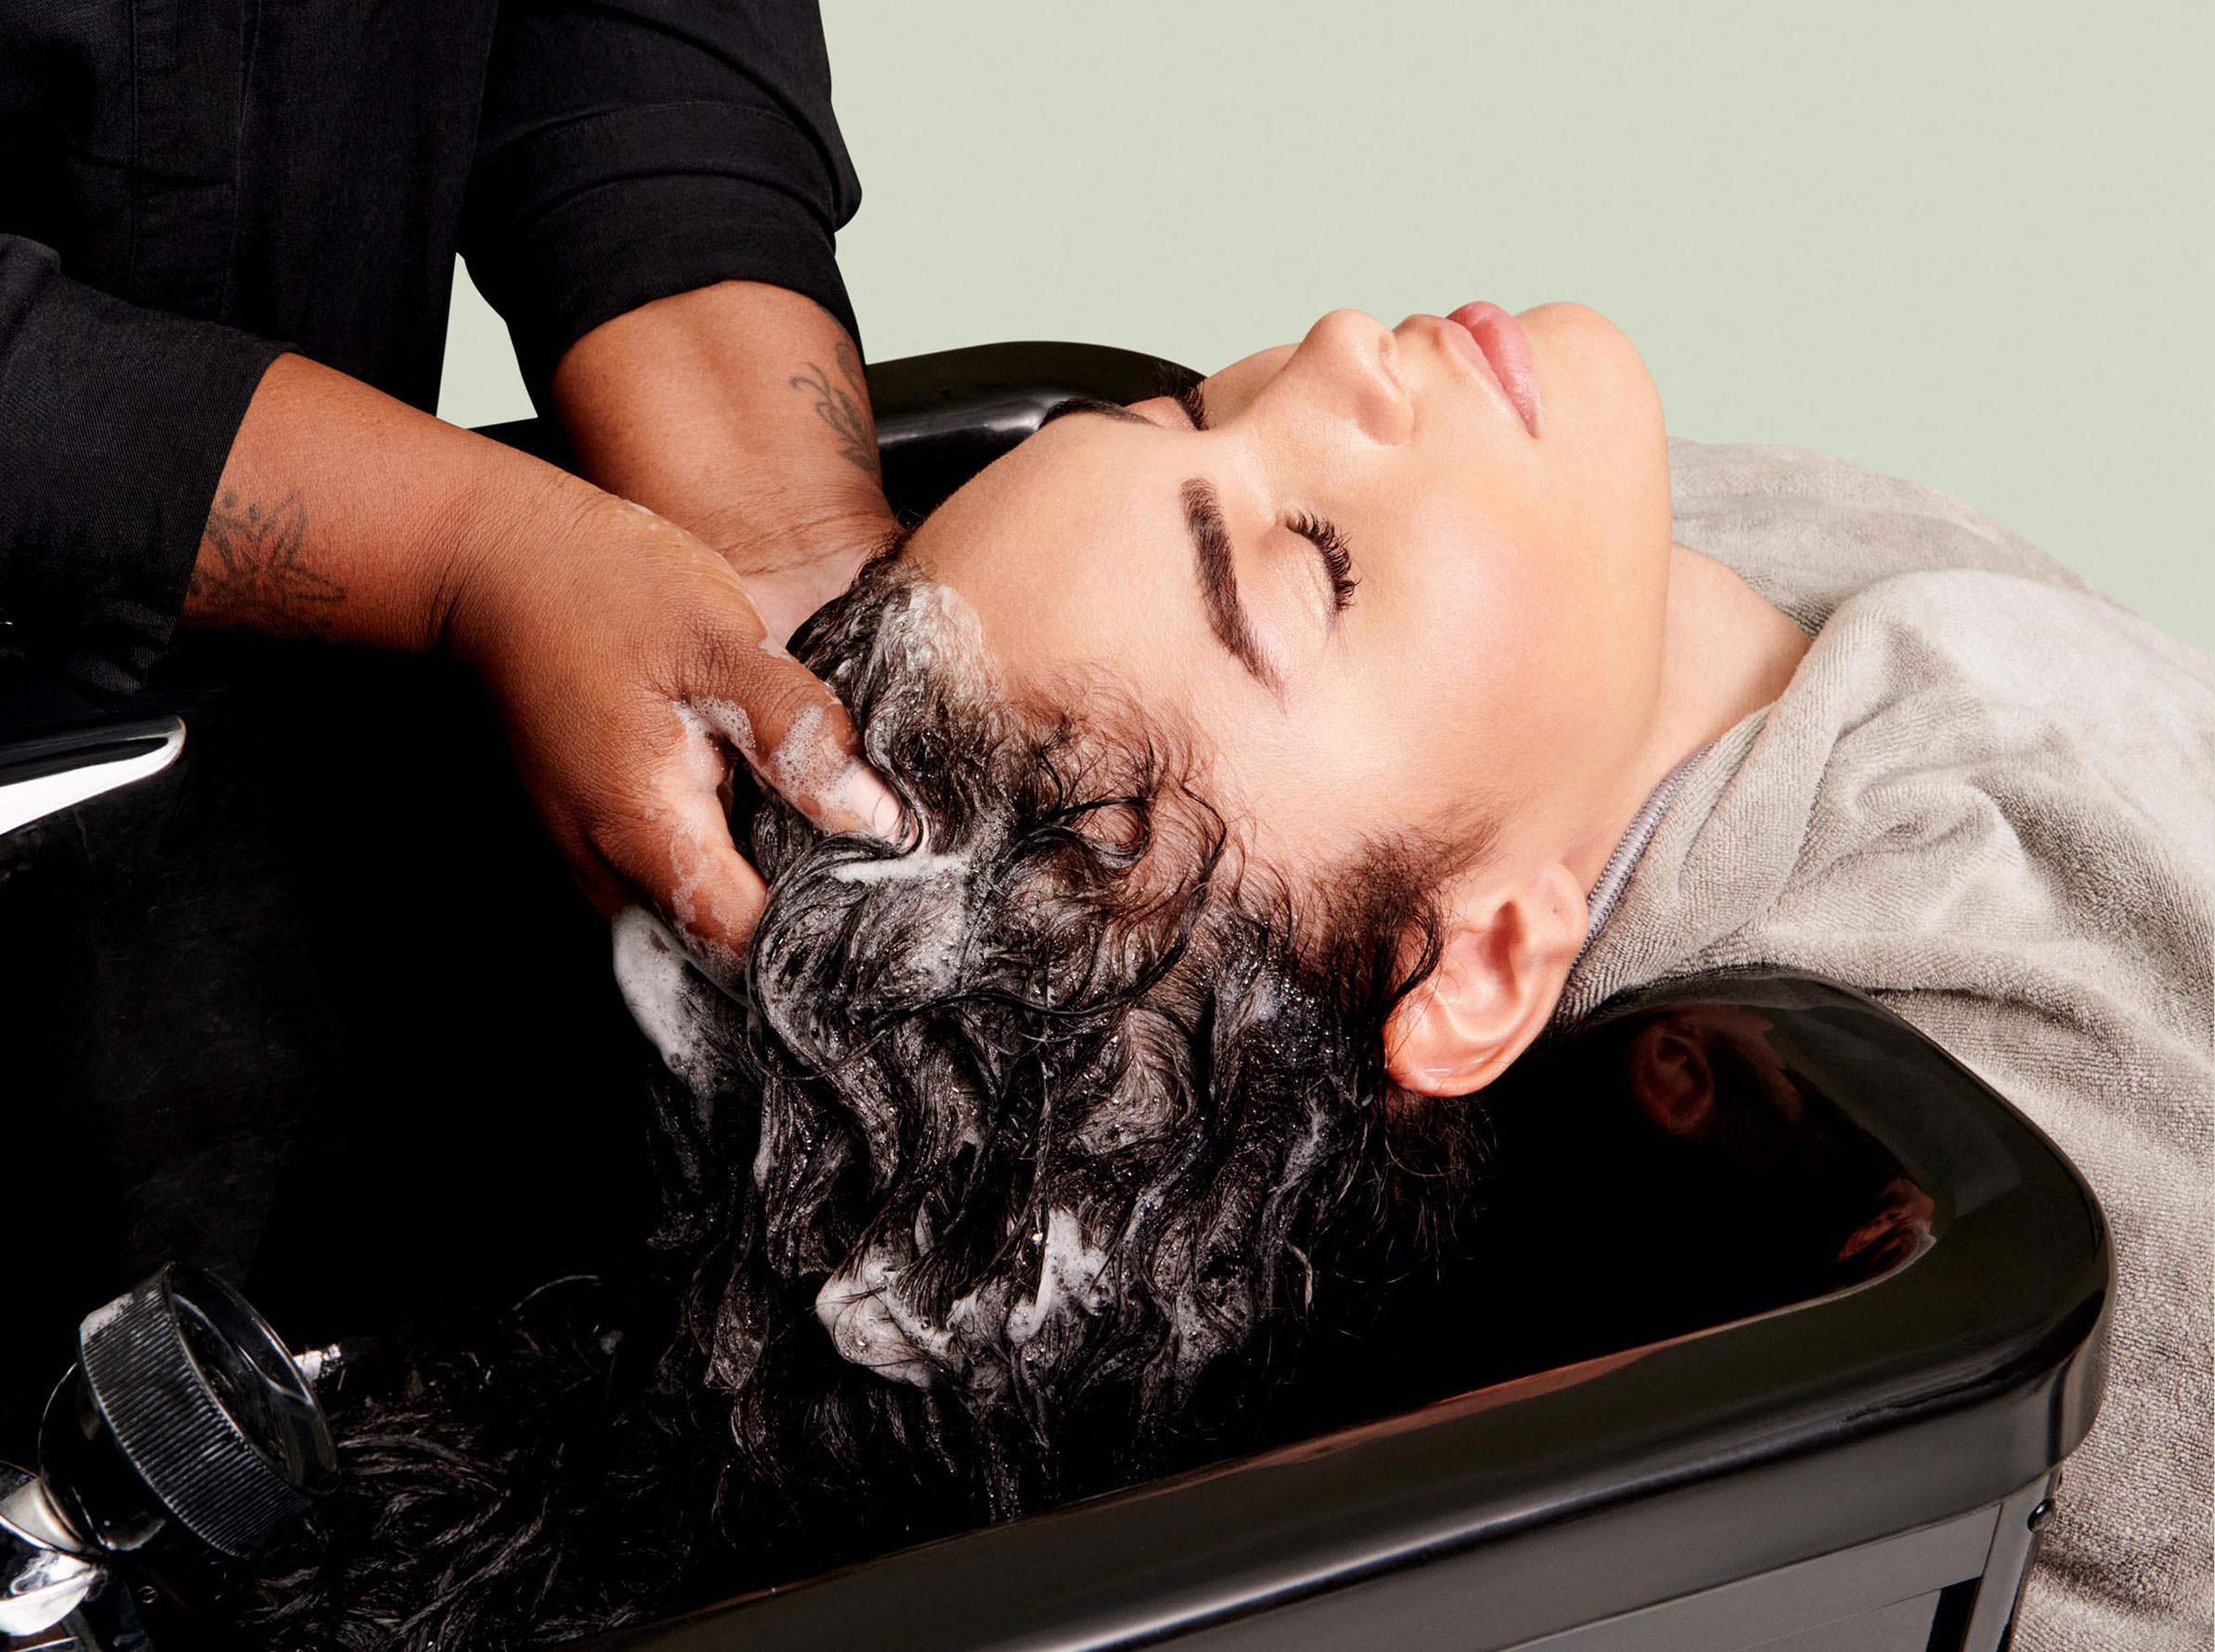 client at salon sink, hands in hair